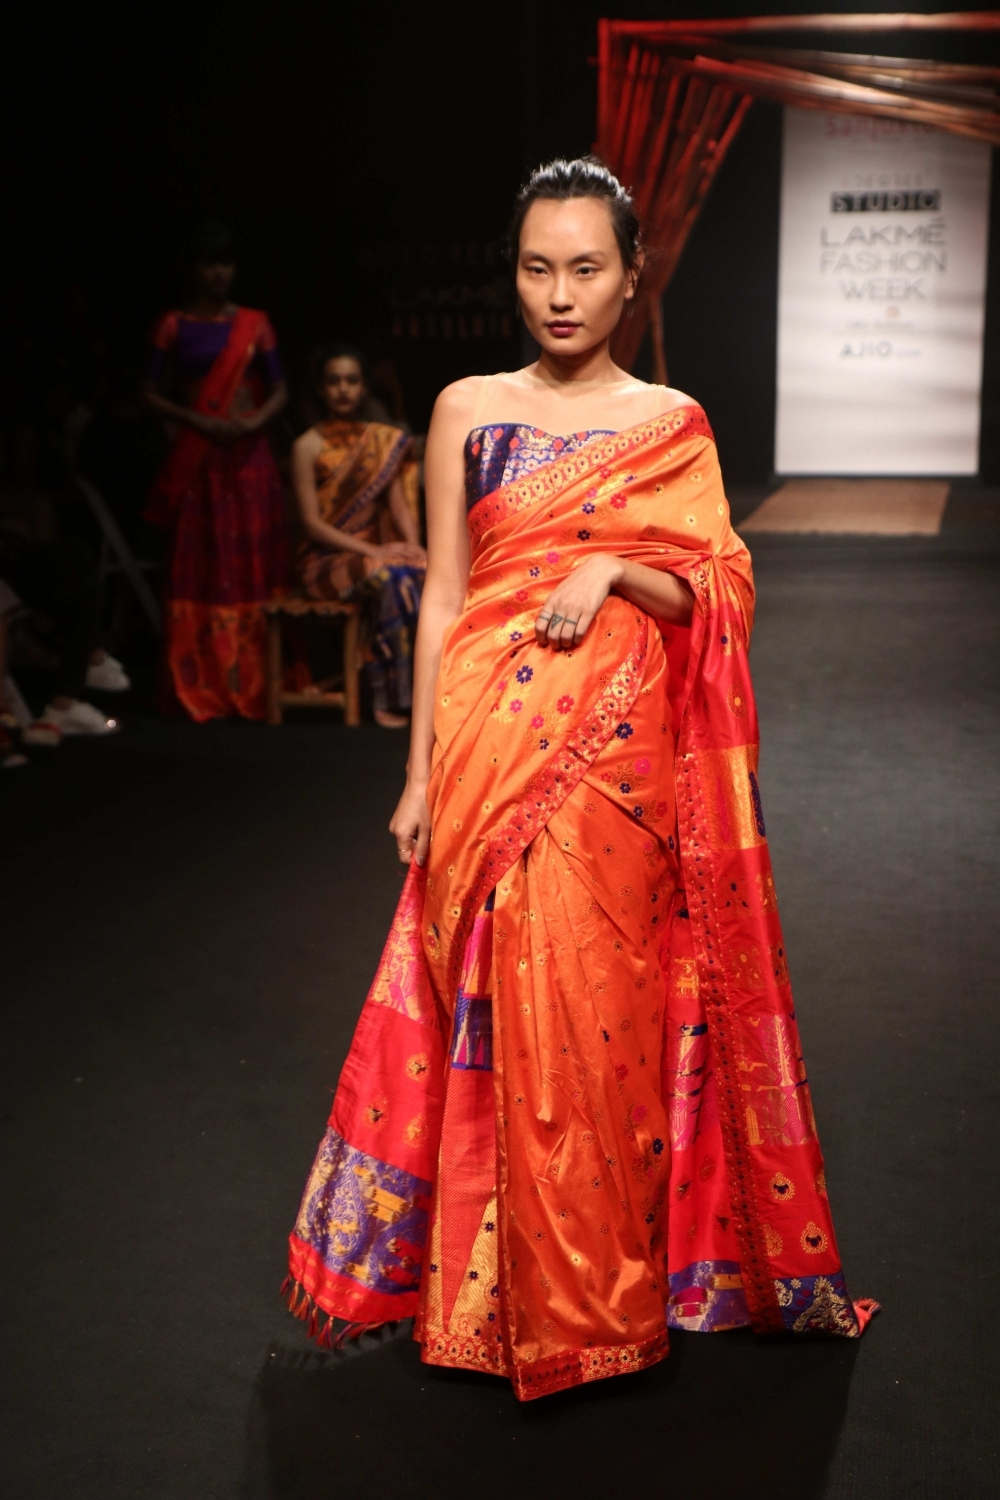 Mumbai: A model displays the creation of fashion designer Sanjukta Dutta during the Lakme Fashion Week Summer/Resort 2017, in Mumbai, on Feb 2, 2017. (Photo: IANS)